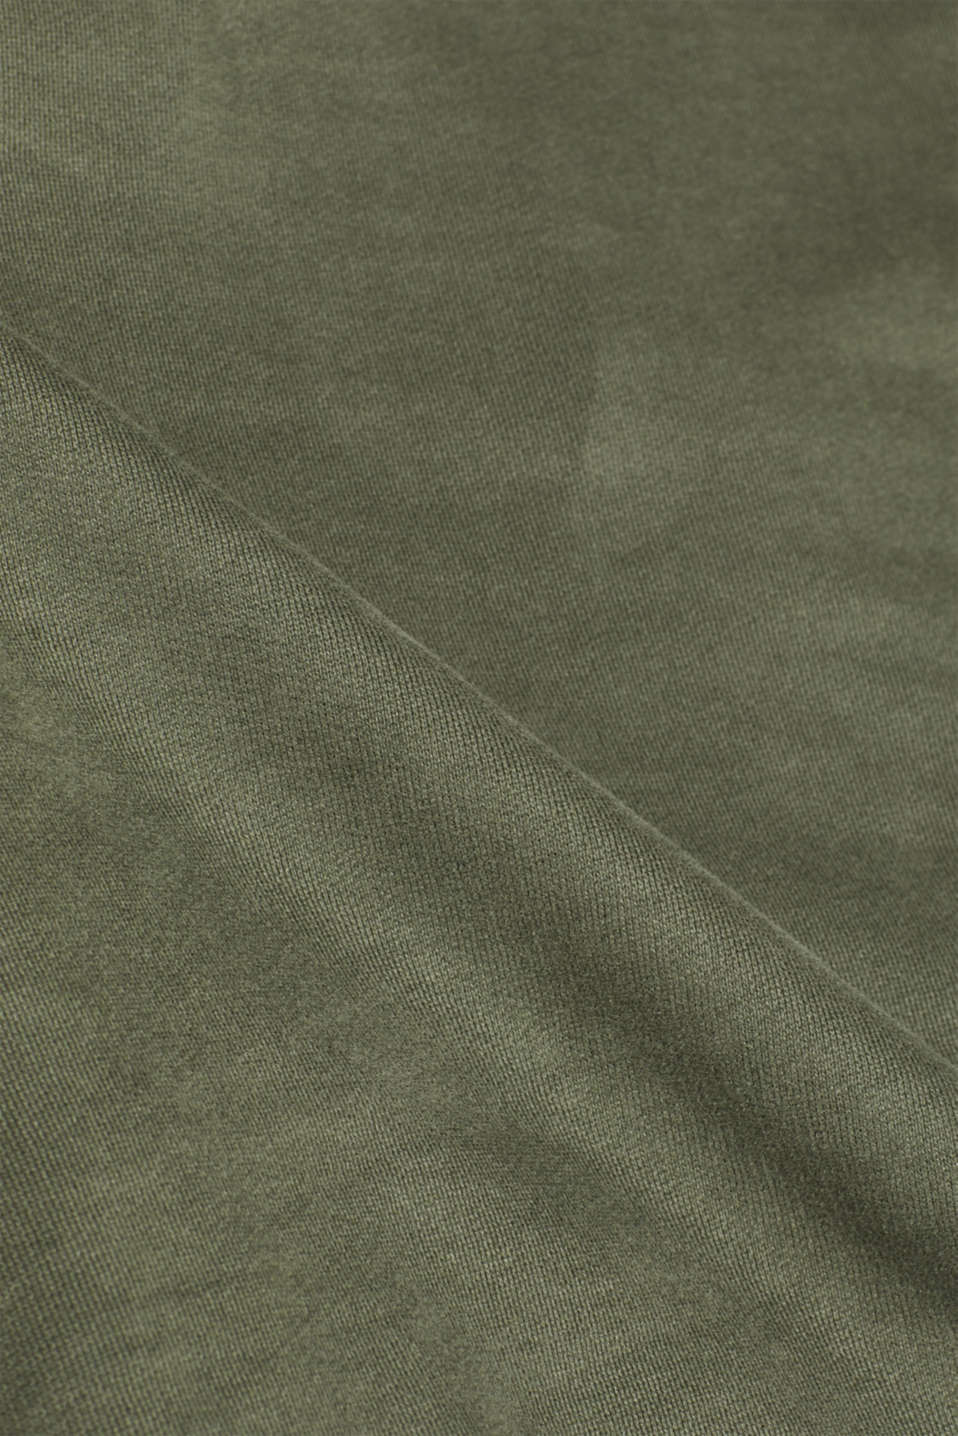 Sweatshirt in 100% cotton, KHAKI GREEN, detail image number 3